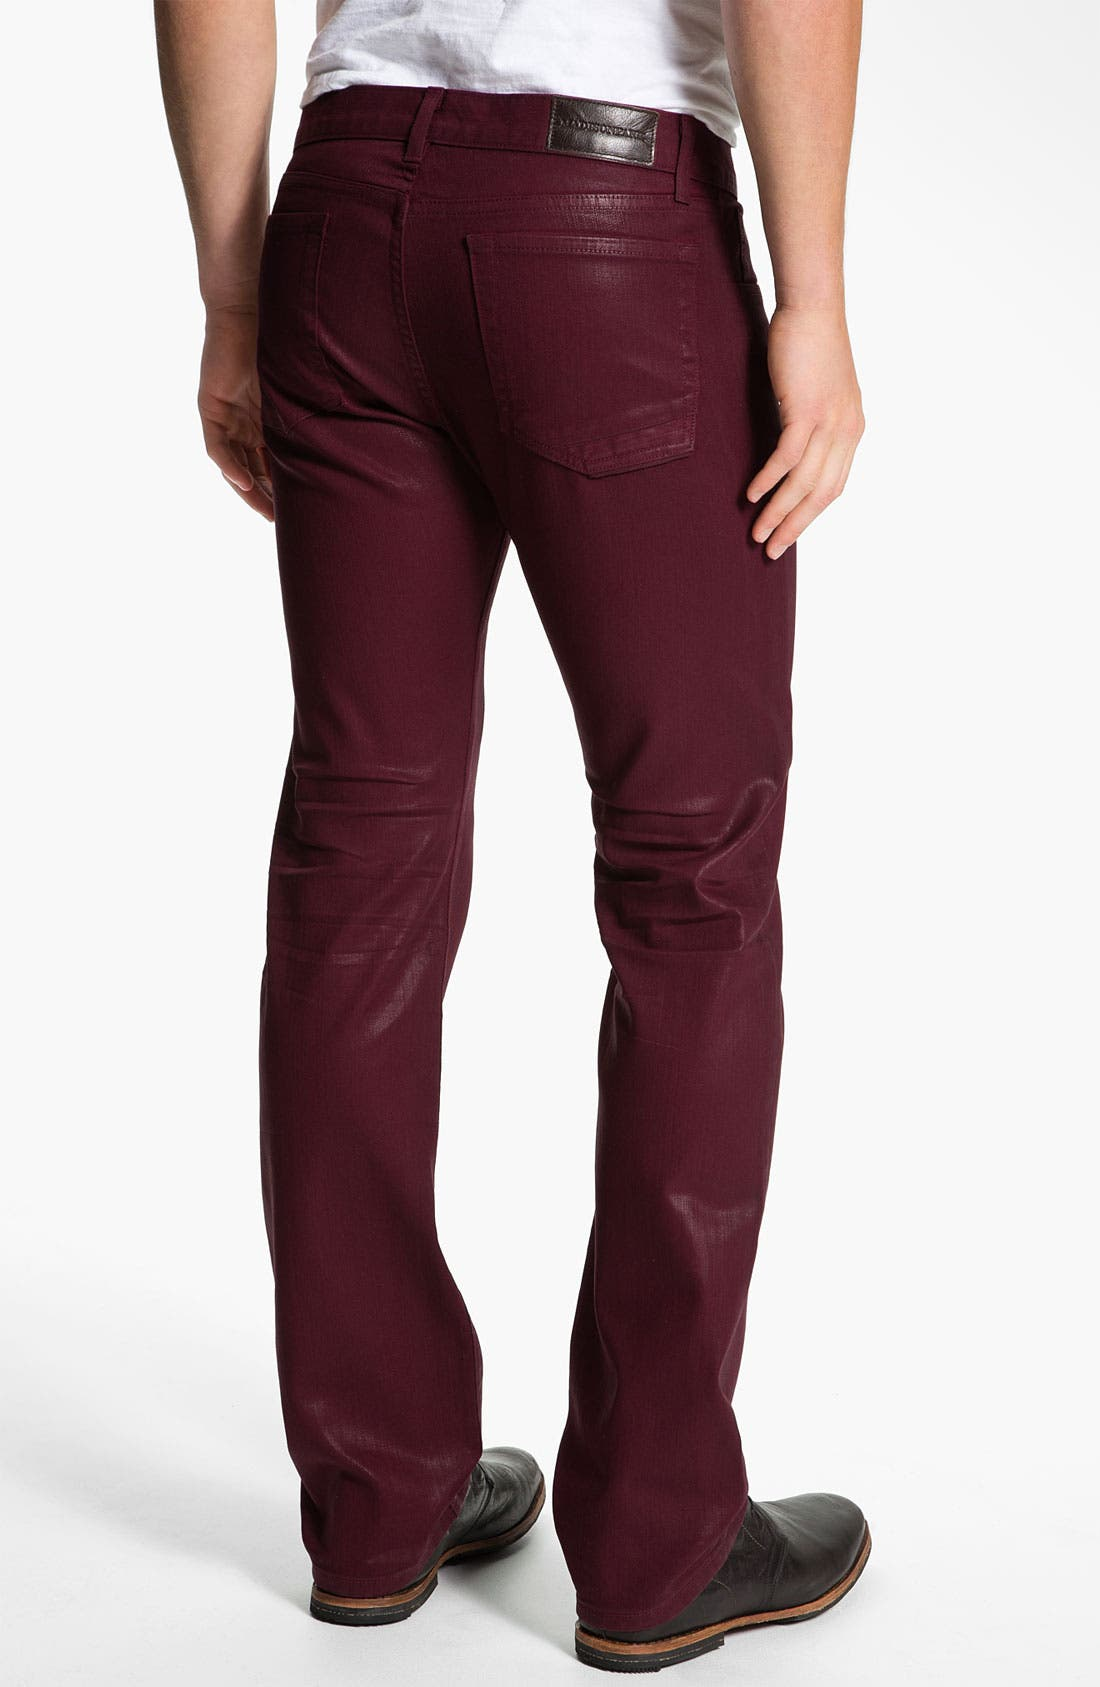 Main Image - Madisonpark Collective 'Miles' Slim Straight Leg Jeans (Merlot)